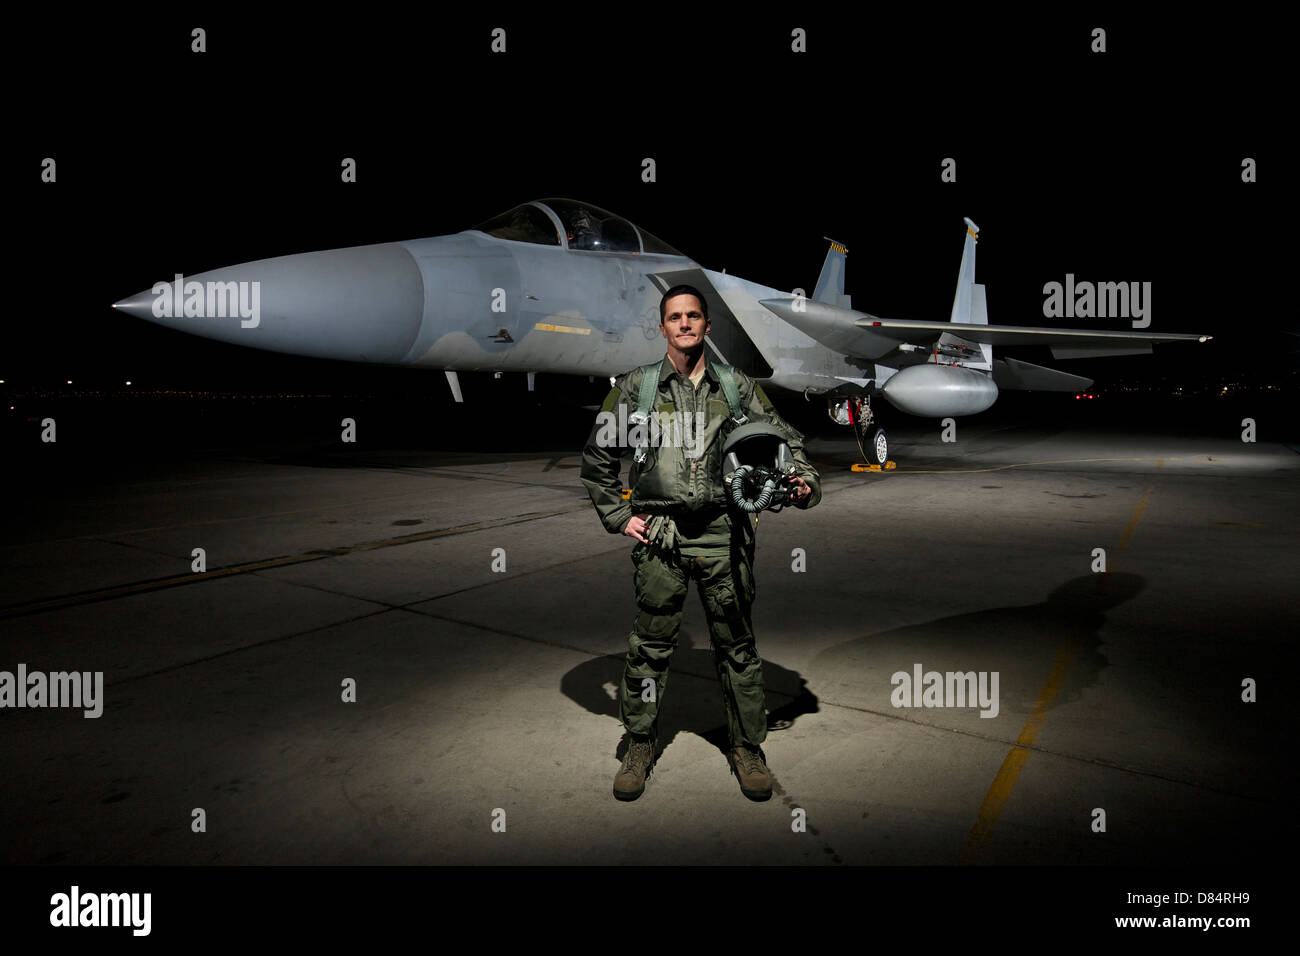 A U.S. Air Force pilot stands in front of a McDonnell Douglas F-15C aircraft. Stock Photo